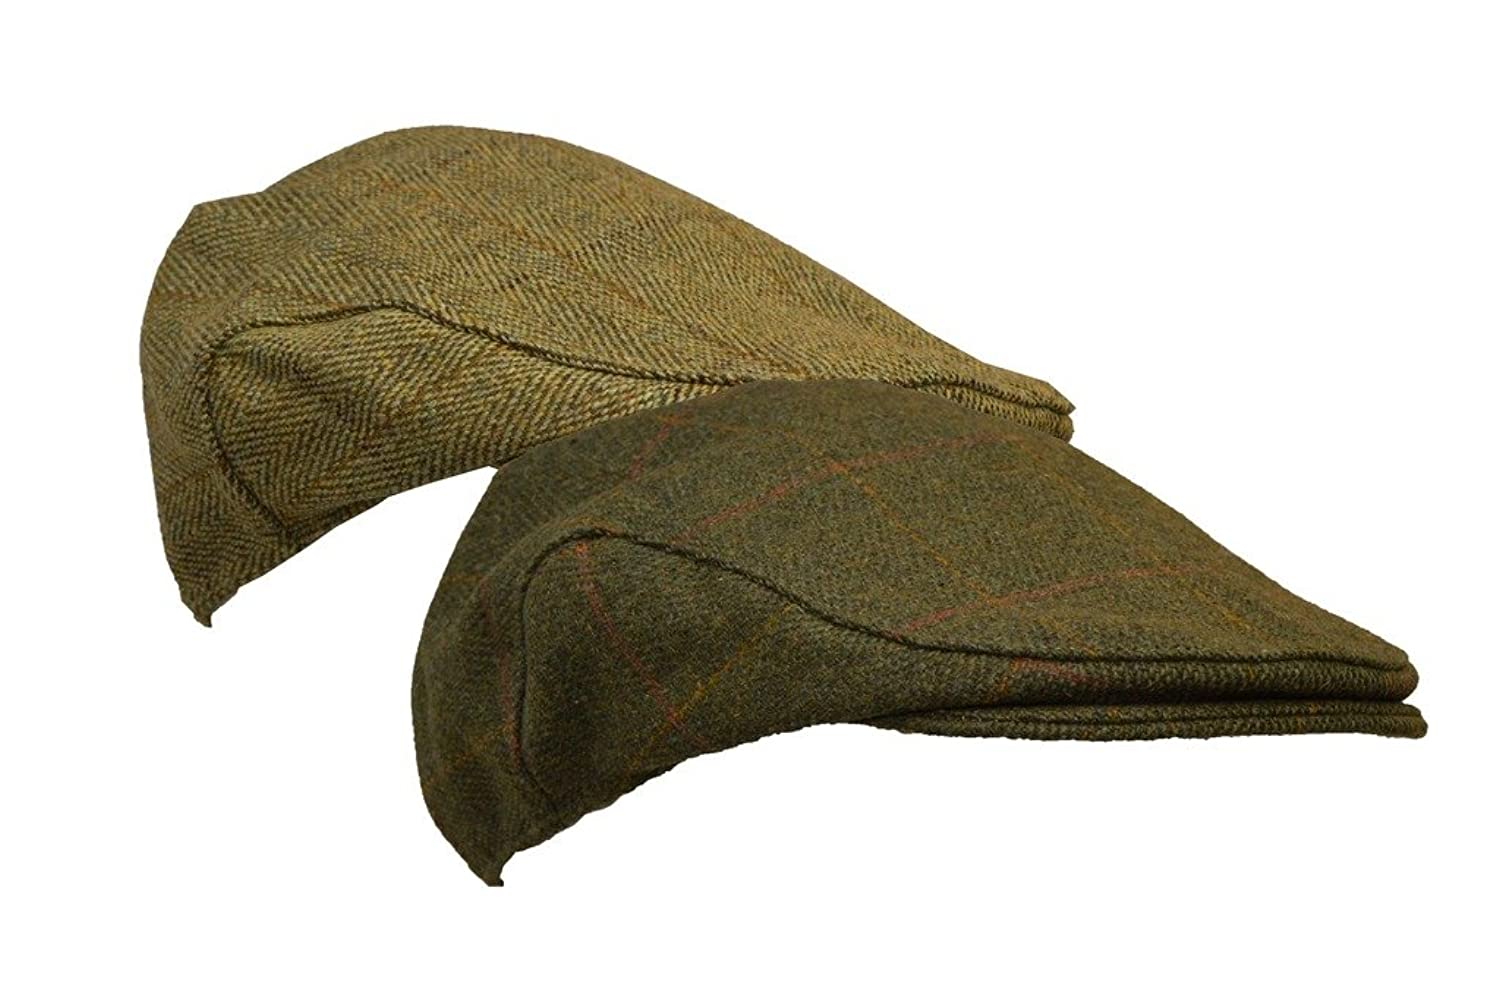 1930s Mens Hat Fashion Derby Tweed Flat Cap Hunting Shooting Countrywear Hat $22.02 AT vintagedancer.com